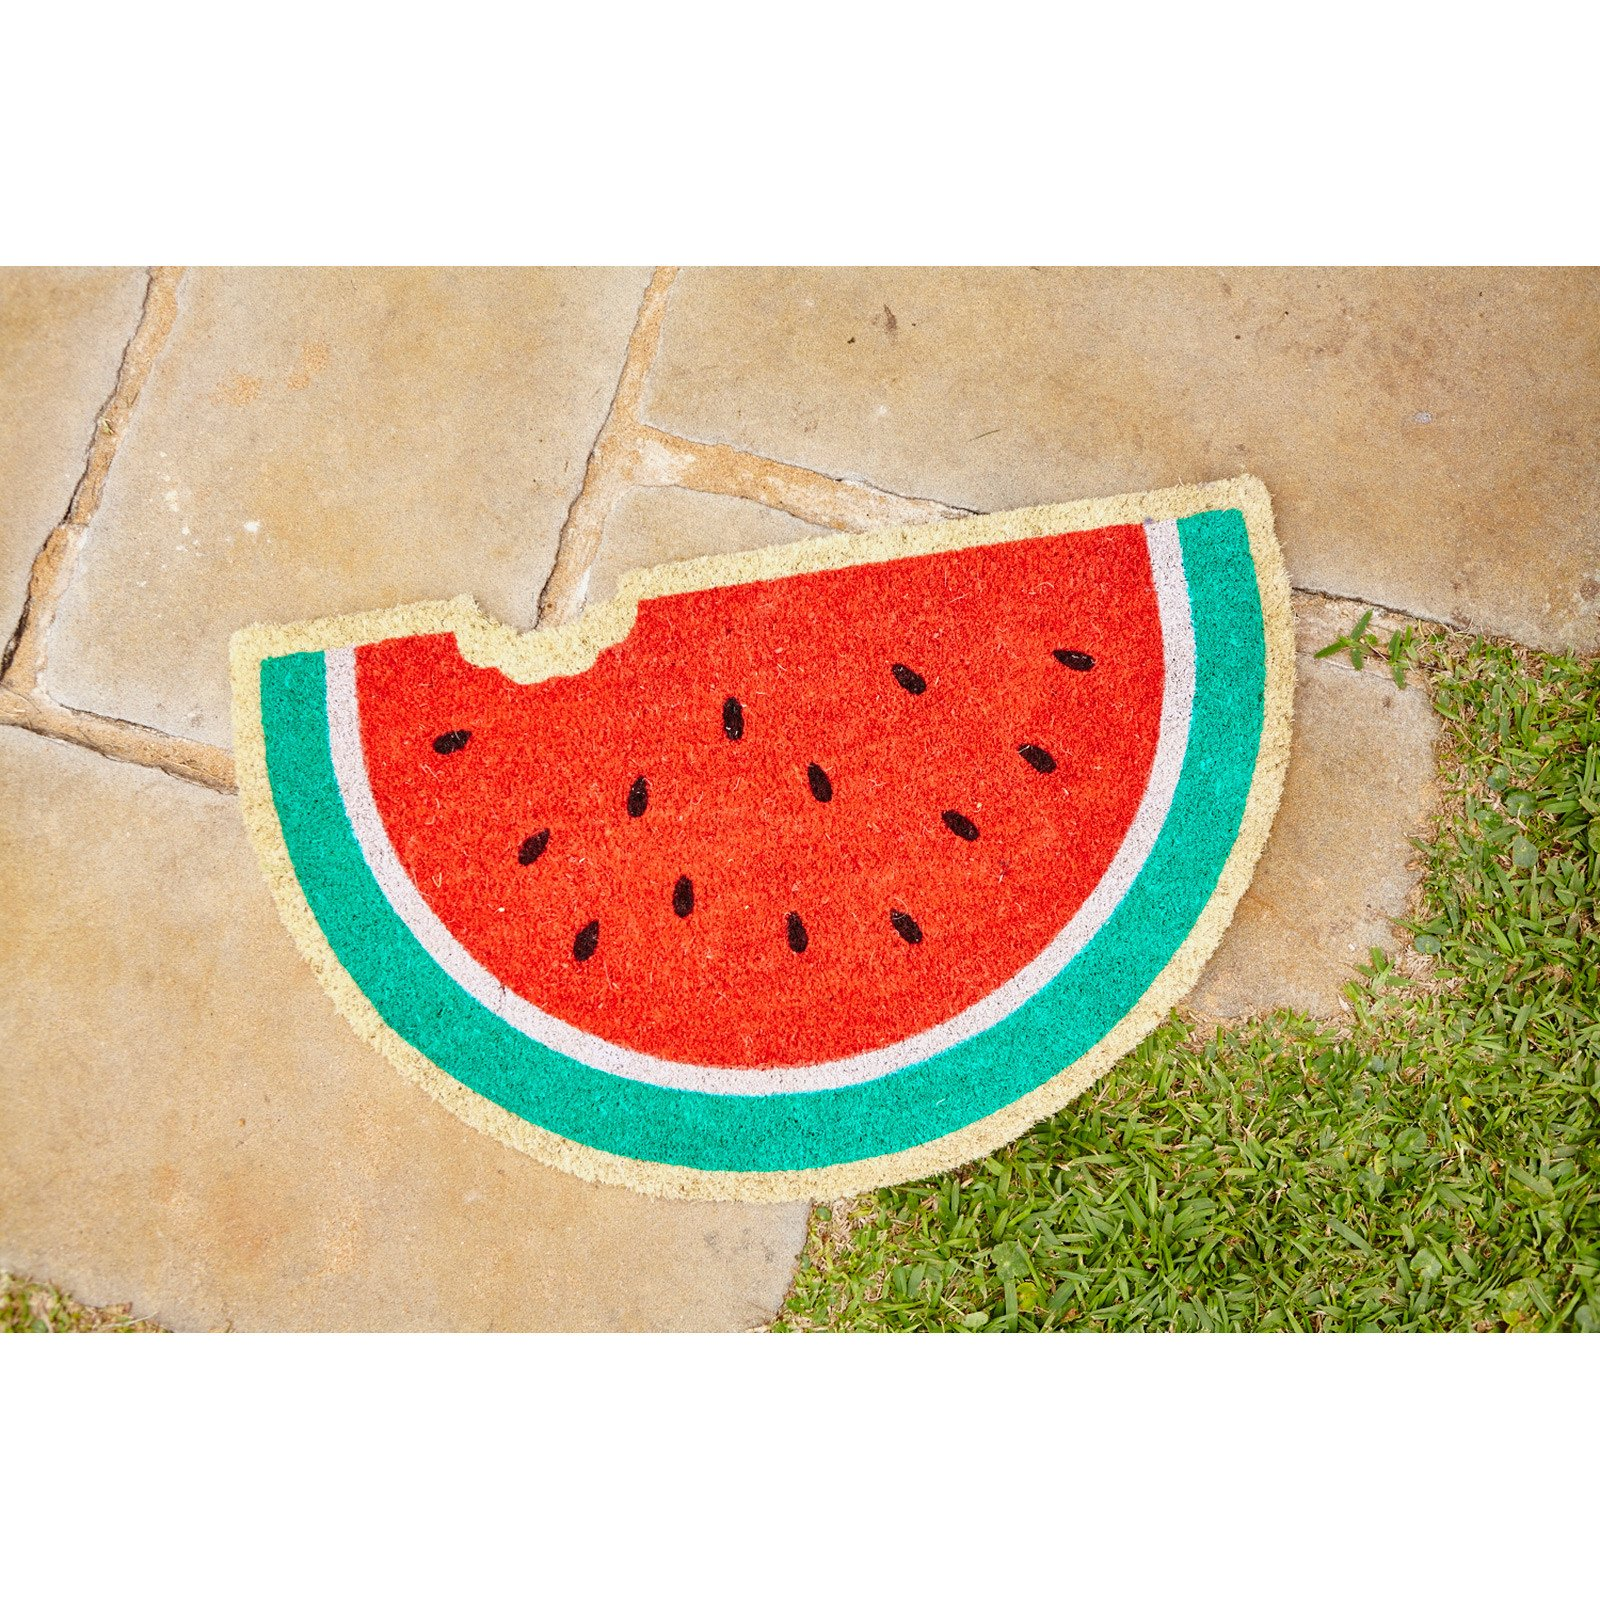 fussmatte wassermelonen scheibe watermelon doormat. Black Bedroom Furniture Sets. Home Design Ideas